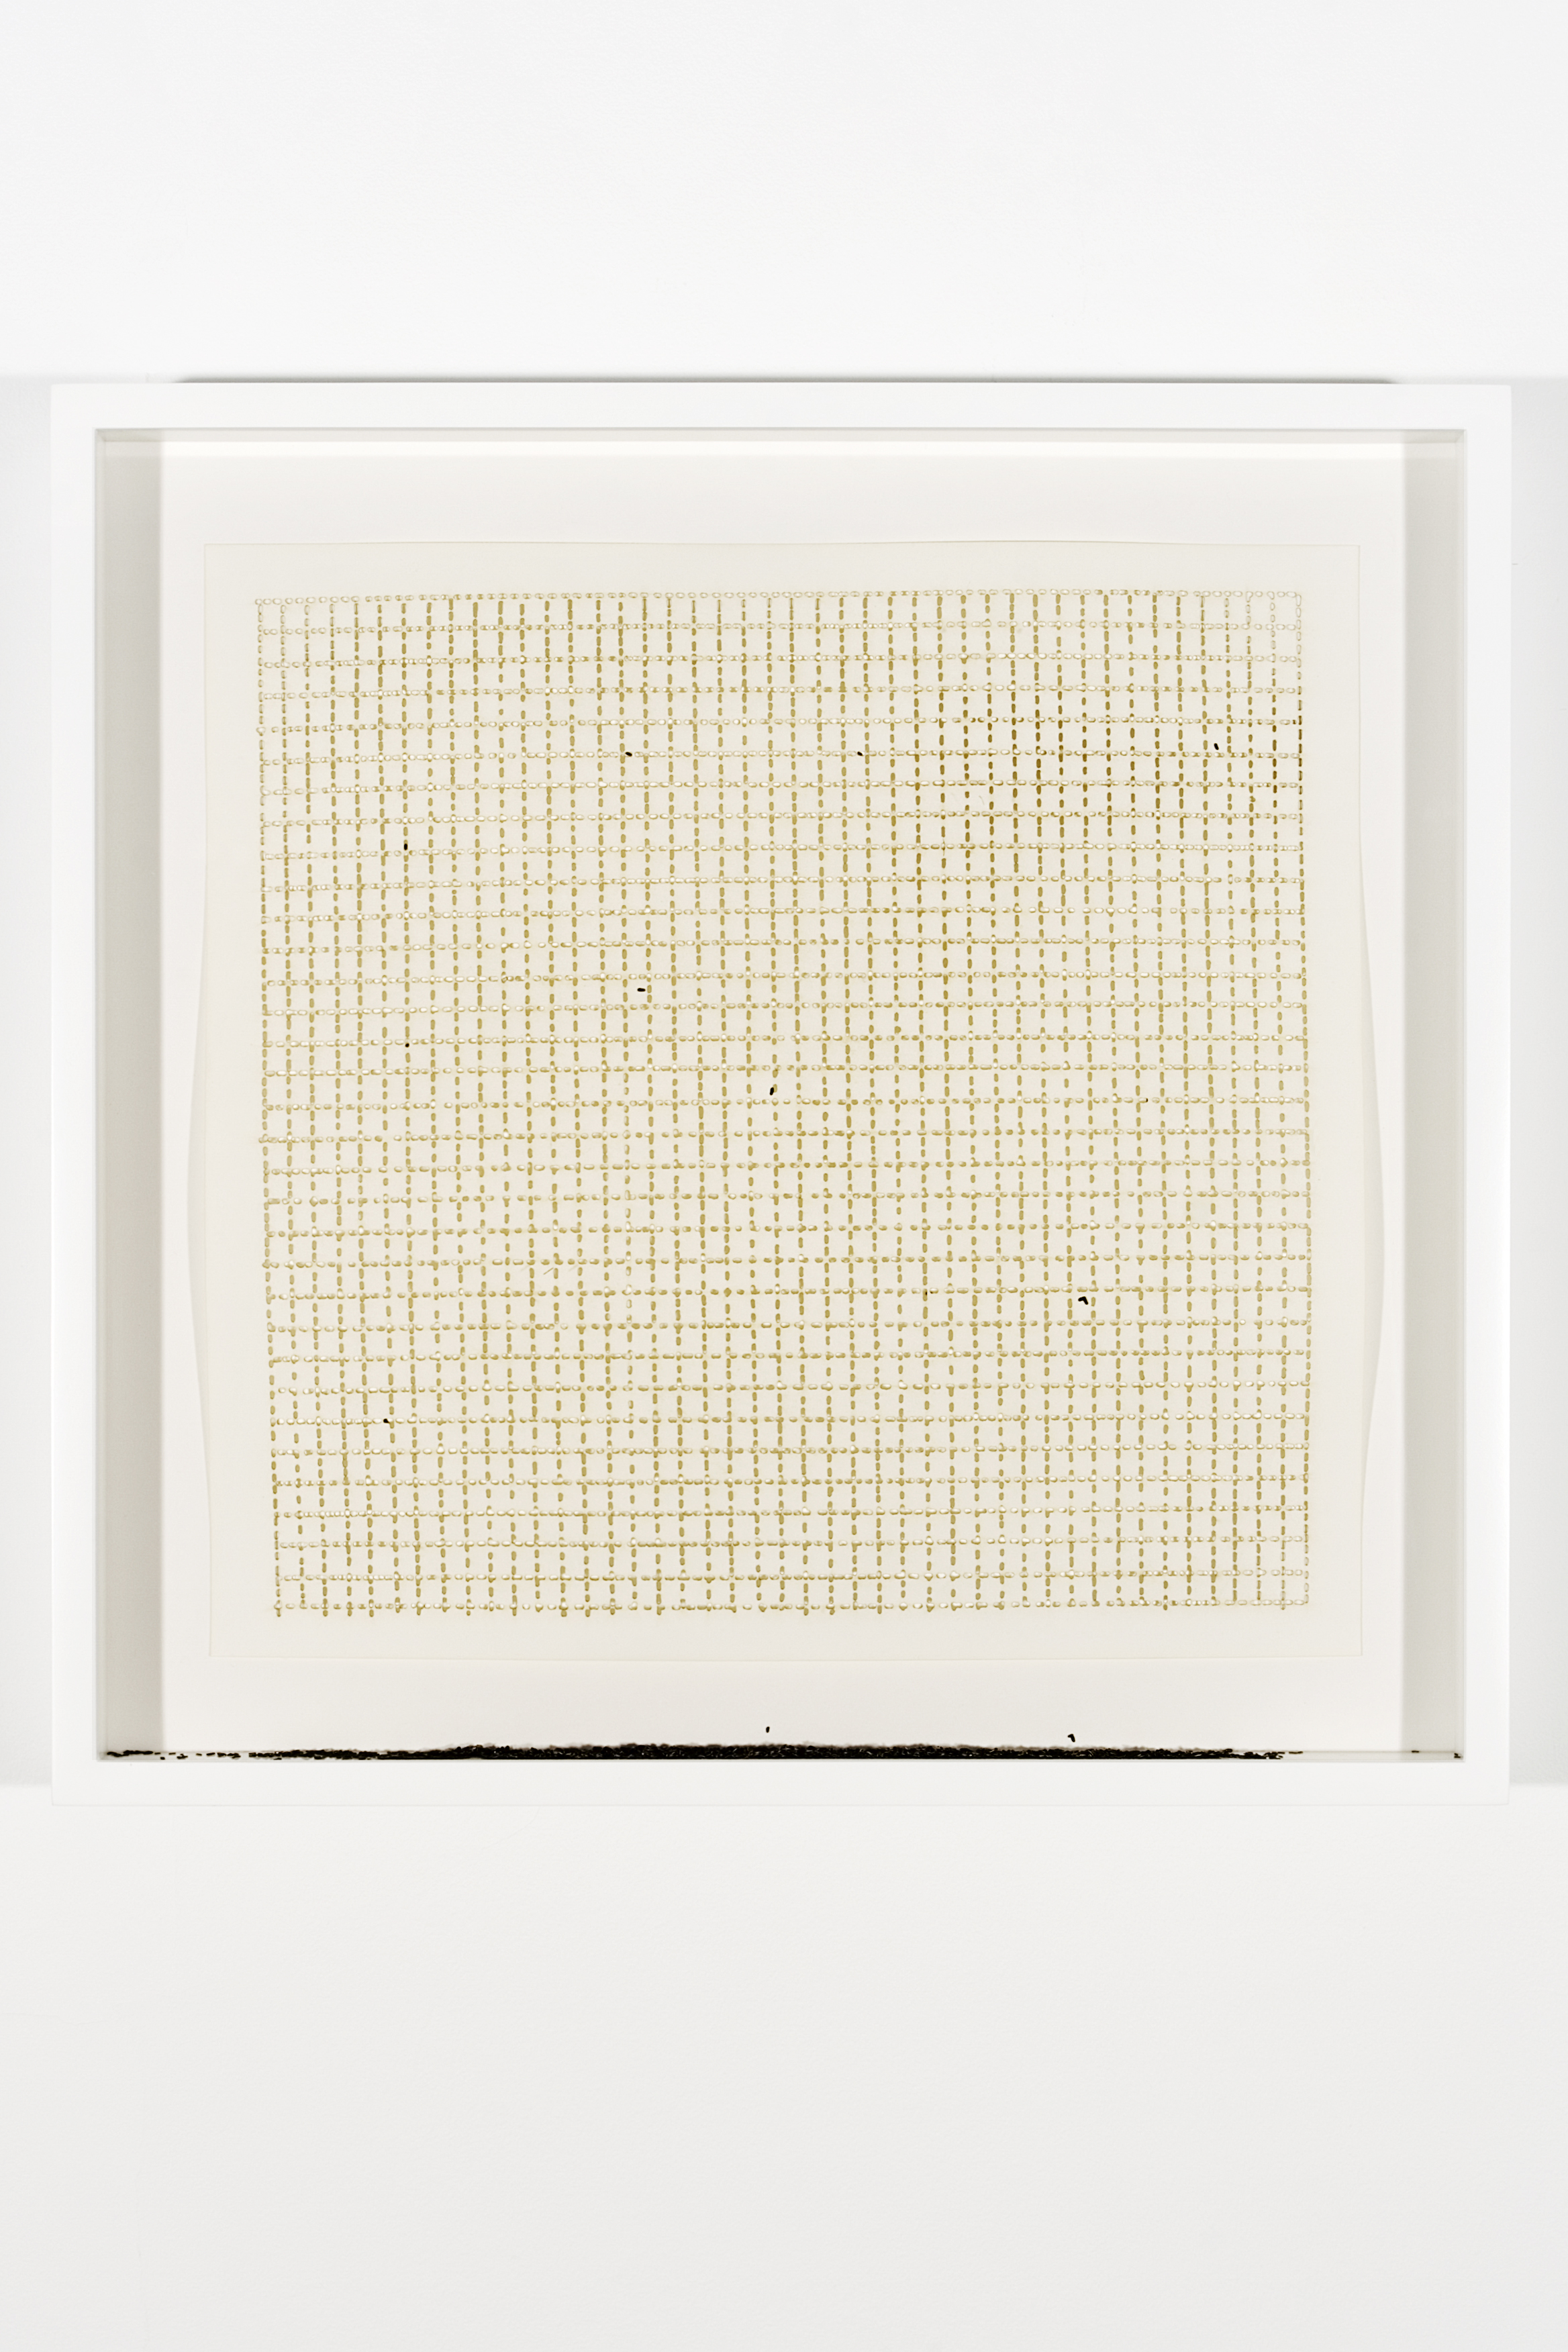 "Collapsed Drawing: ""Untitled"" (Agnes Martin), 2007 laser-cut paper and laser-cut archival digital print mounted on museum board 49 x 50,3 cm - 19 1/4 x 19 3/4 inches (framed)"